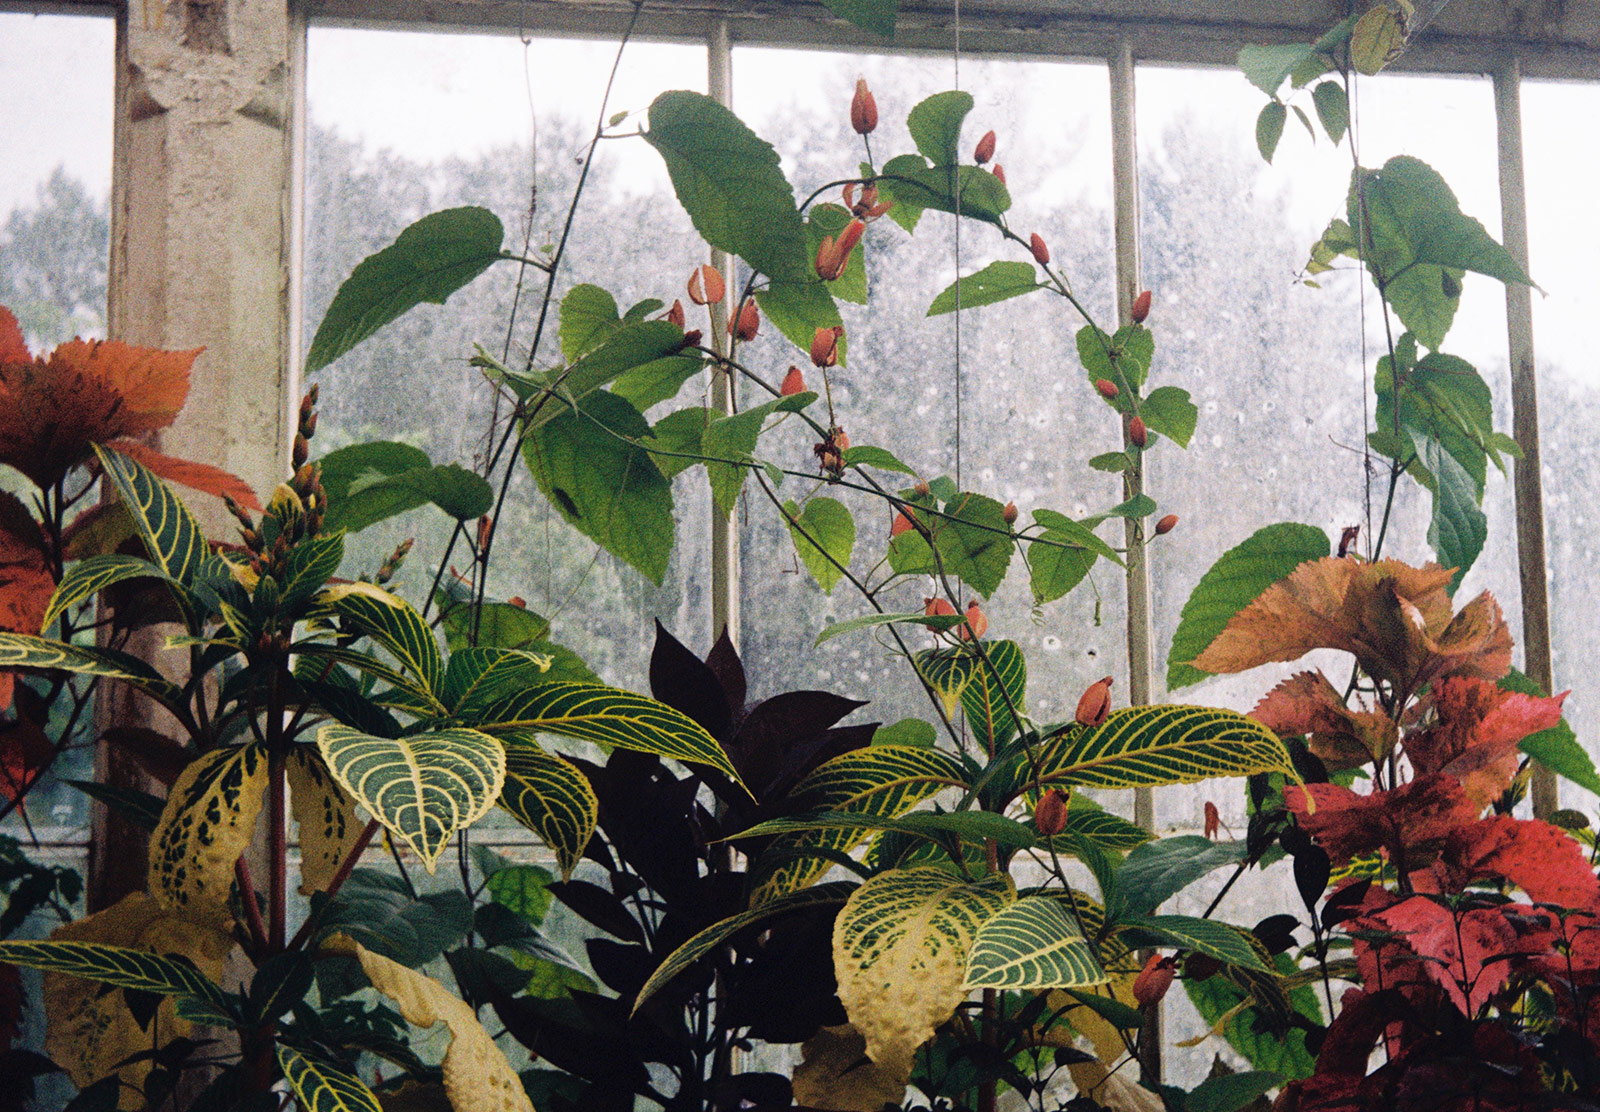 Climbing plants on window